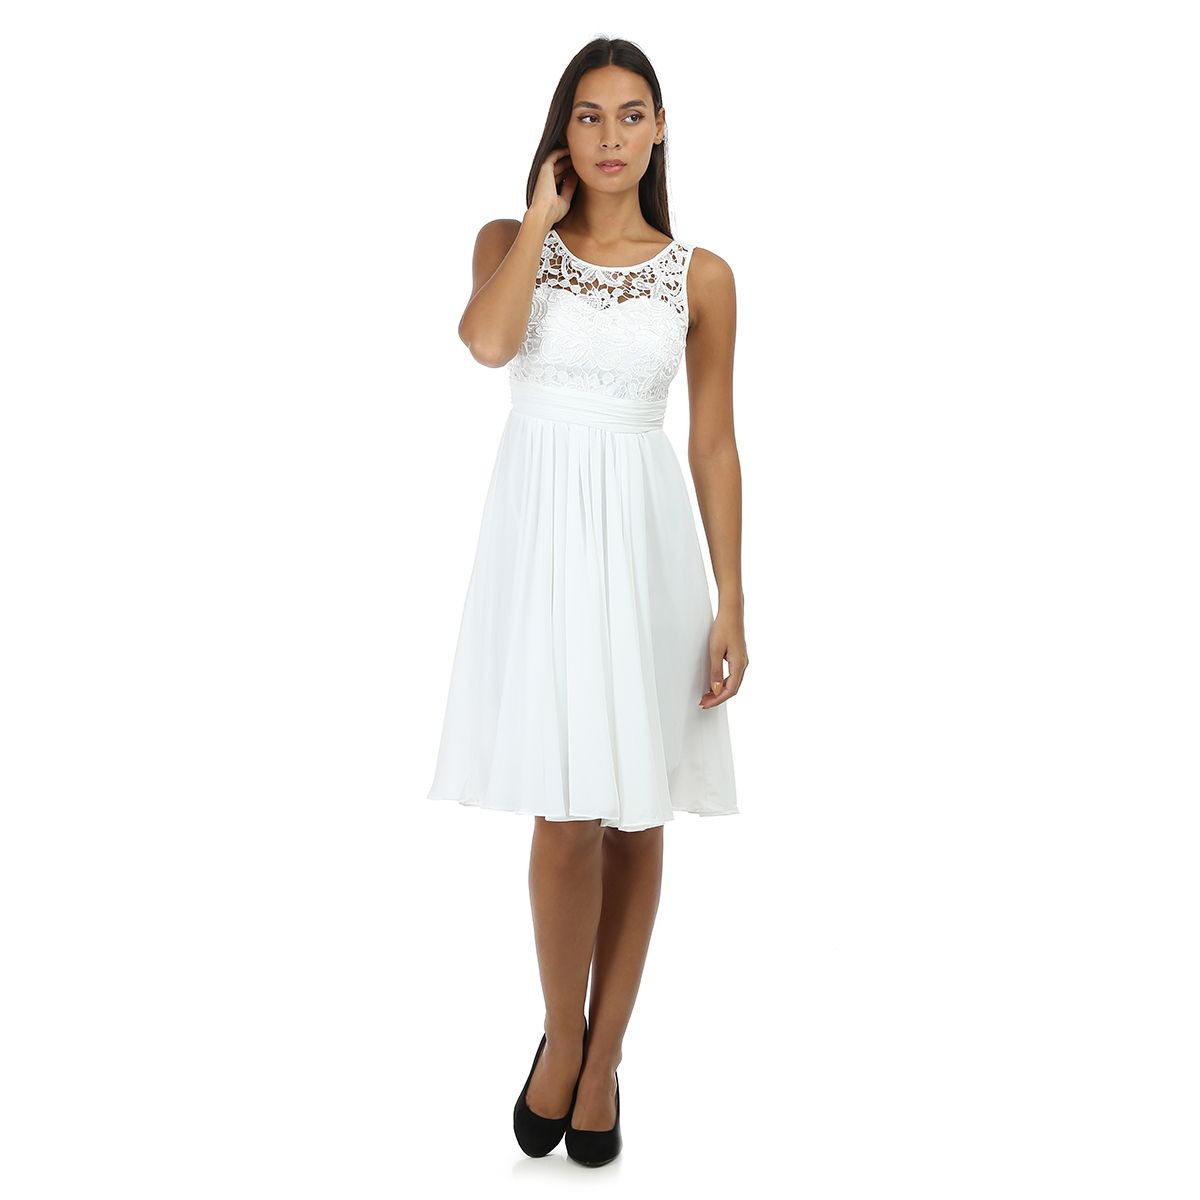 Robe patineuse blanche à bustier dentelle